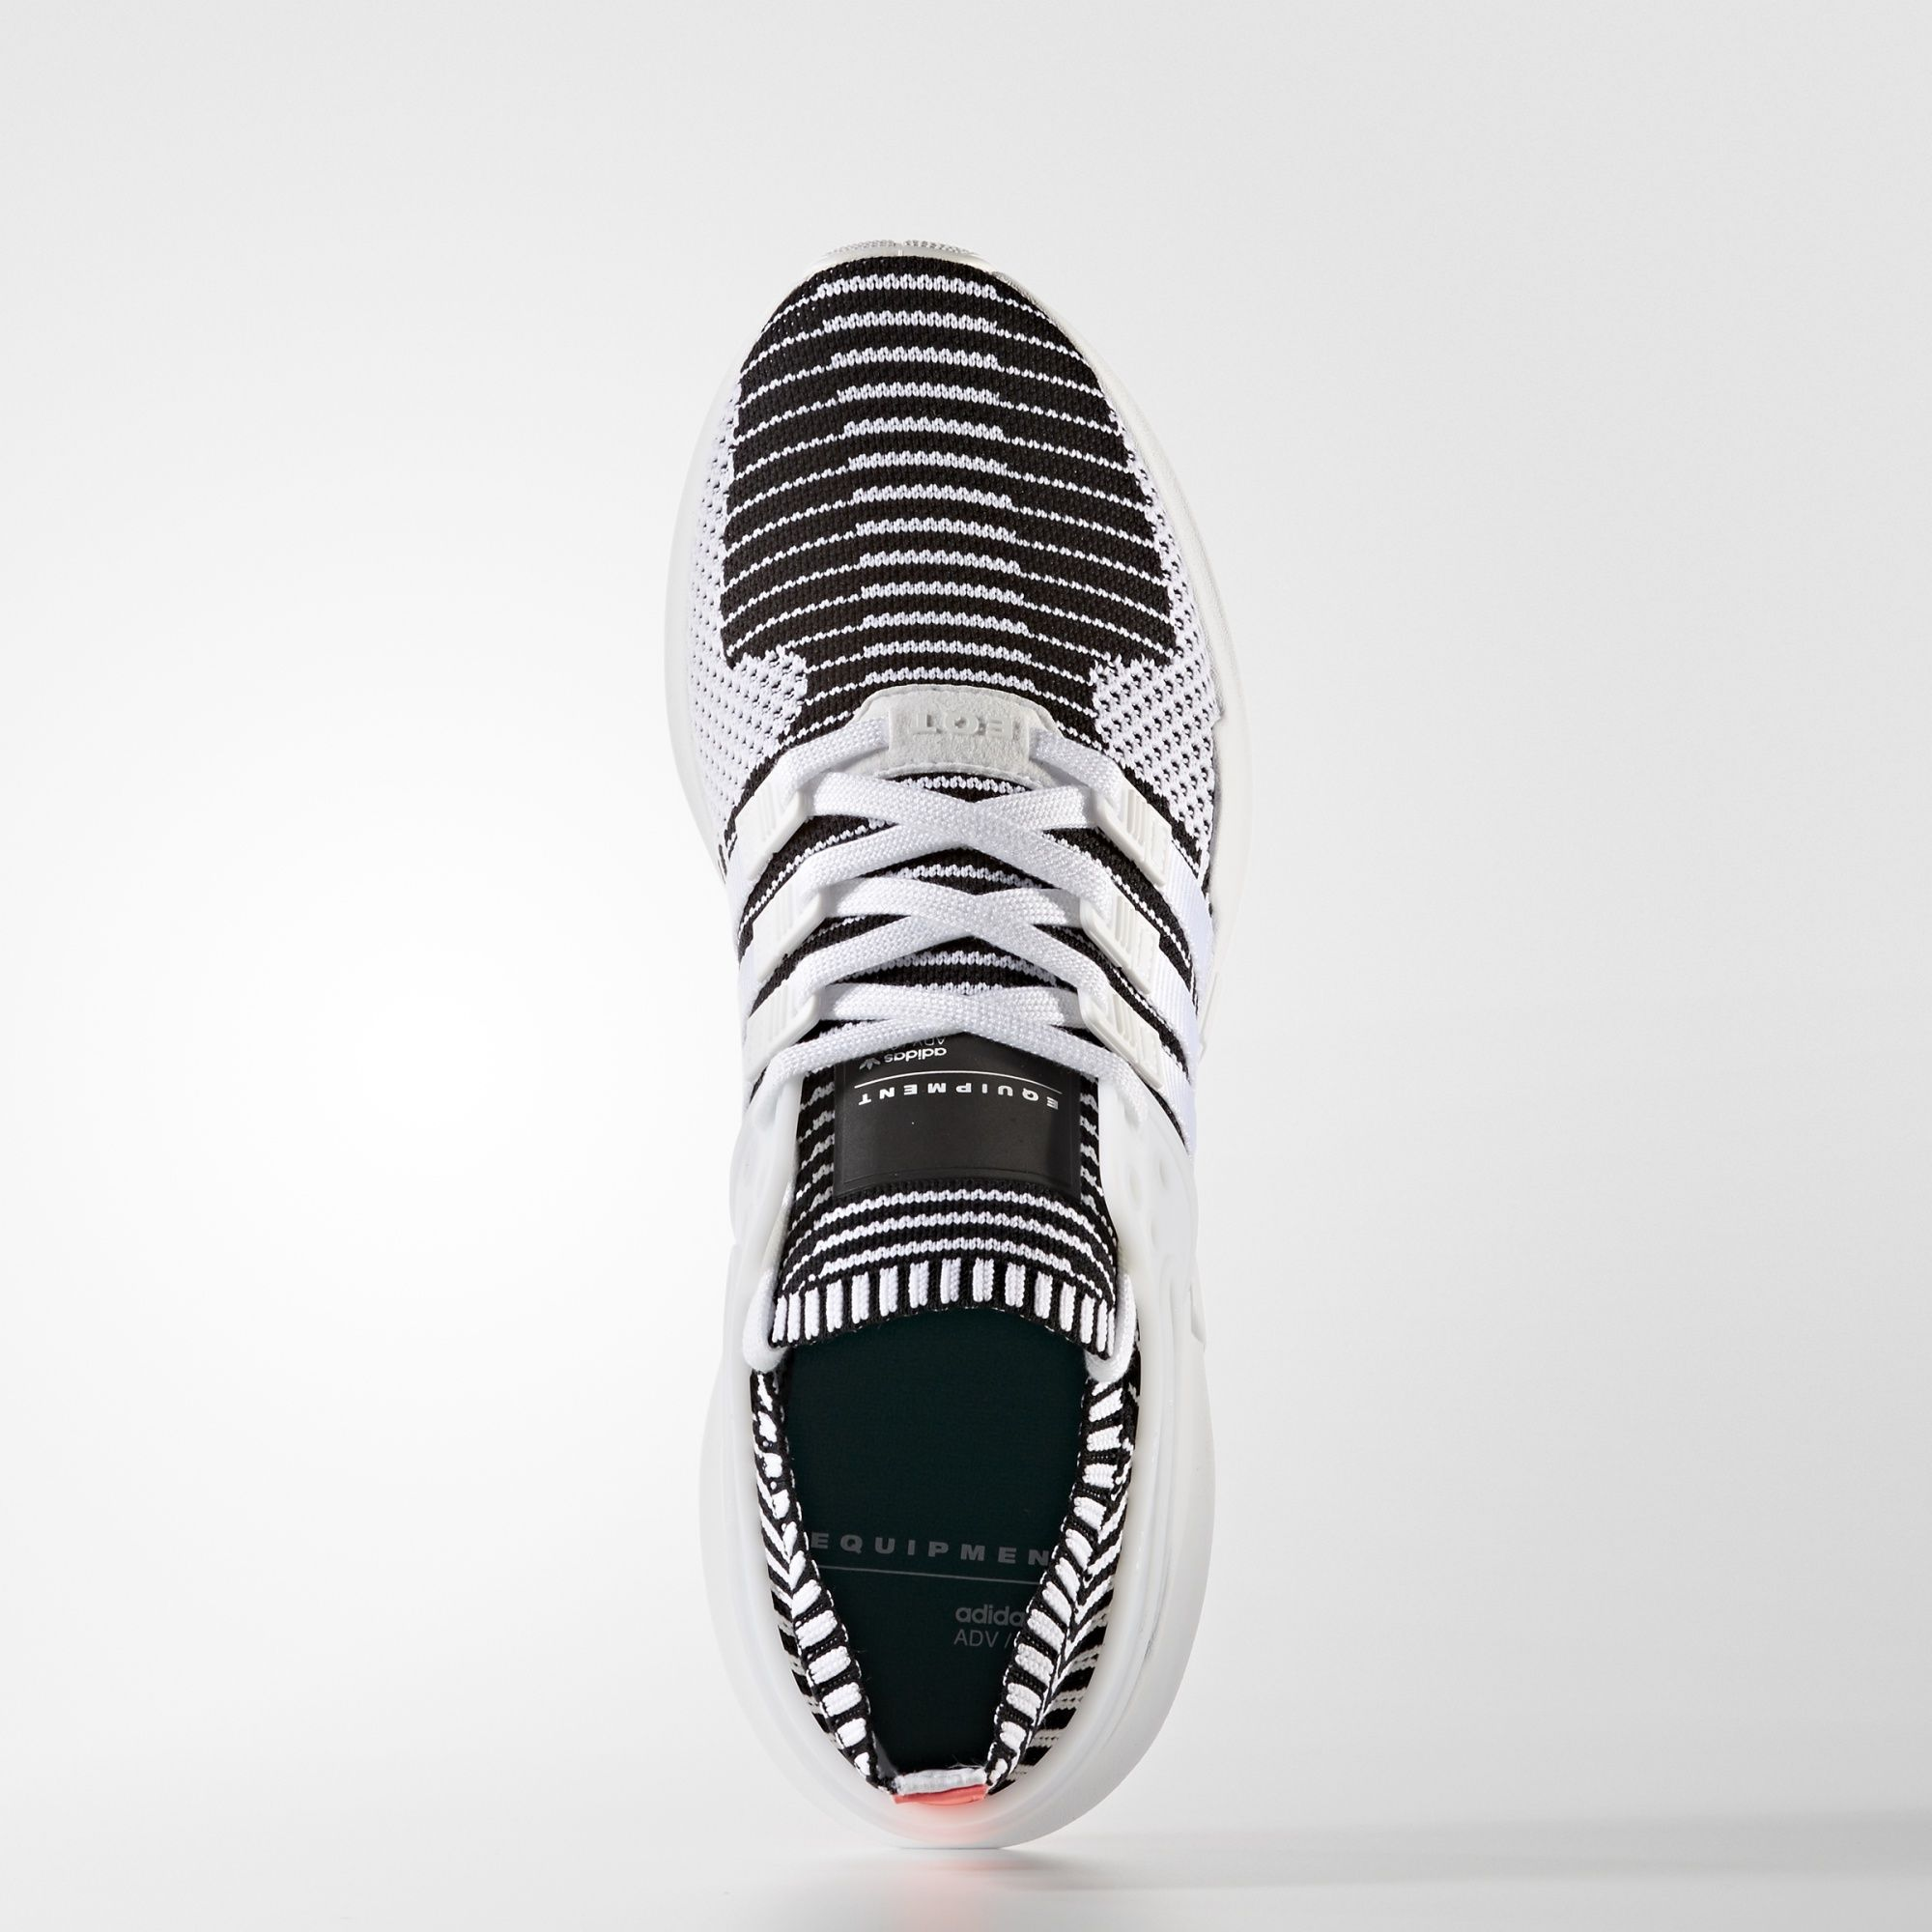 adidas EQT Support ADV Primeknit White Turbo Red BA7496 1